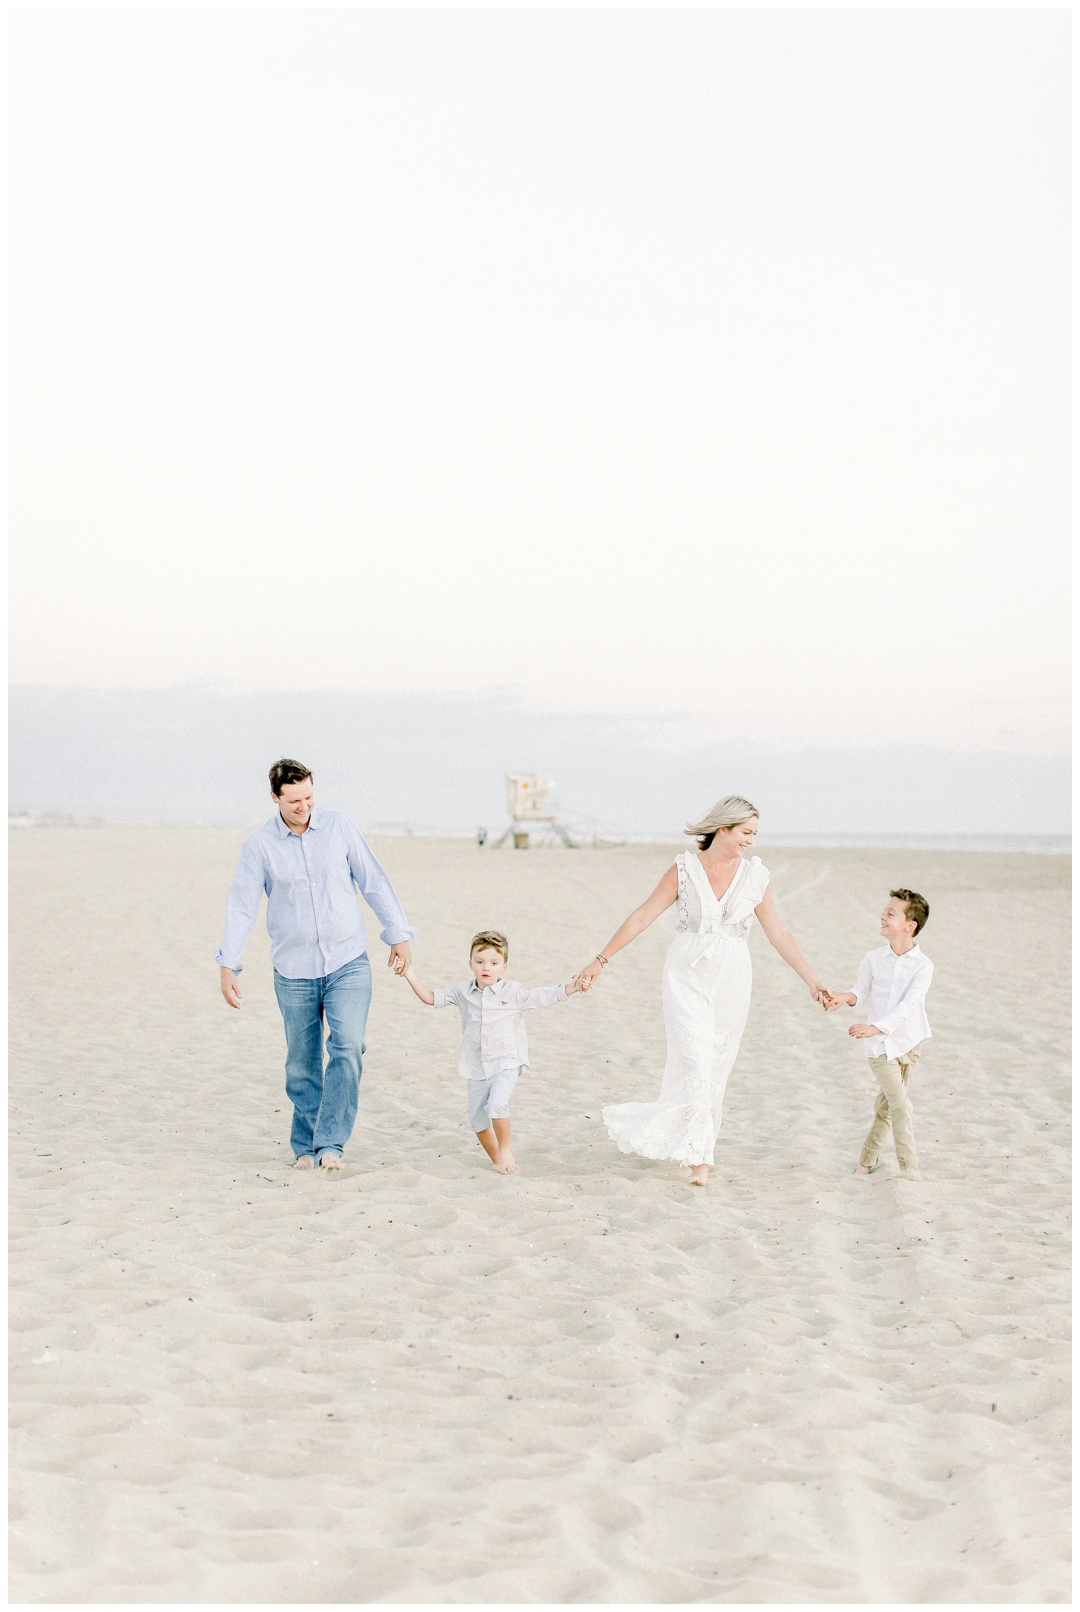 Newport_Beach_Family_Photographer_Newport_Beach_Newborn_Photographer_Orange_County_Family_Photographer_Cori_Kleckner_Photography_Huntington_Beach_San_Clemente_Family_Session_Photography__2346.jpg